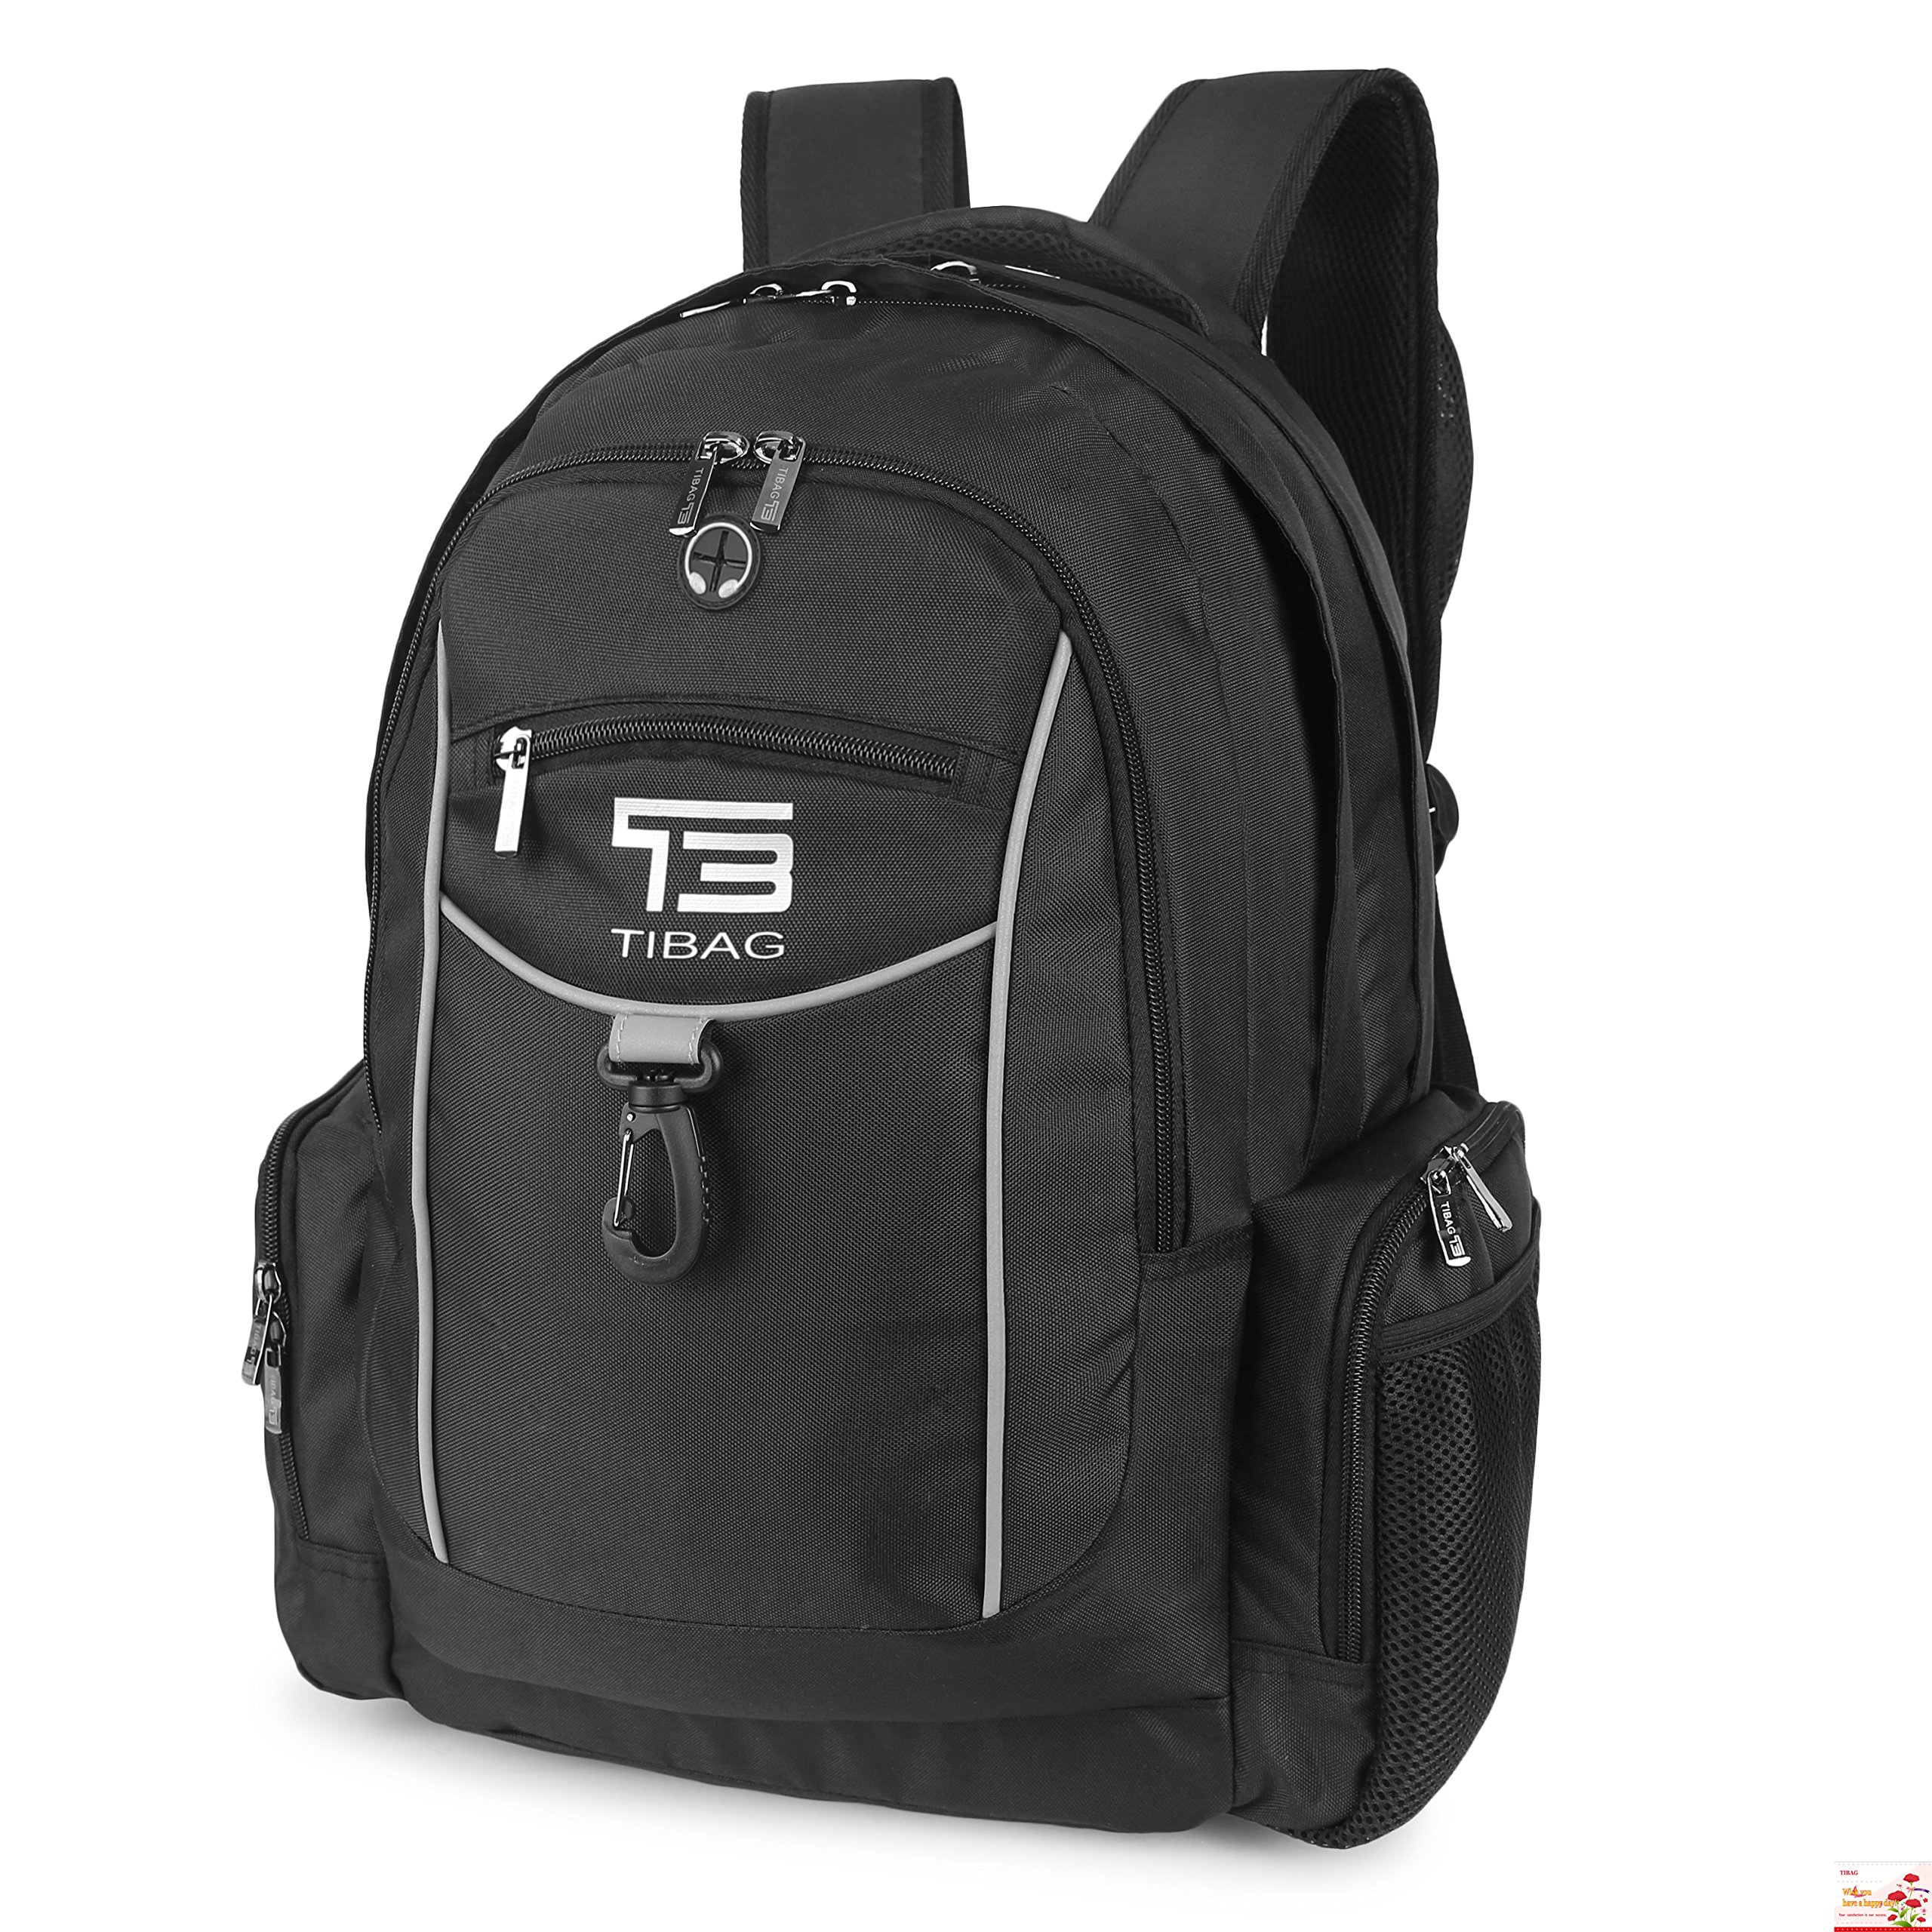 "Laptop Backpack Water Resistant Computer Backpacks Bag for Men College School Travel and Work Fit Laptops Up to 17"" (Black)"